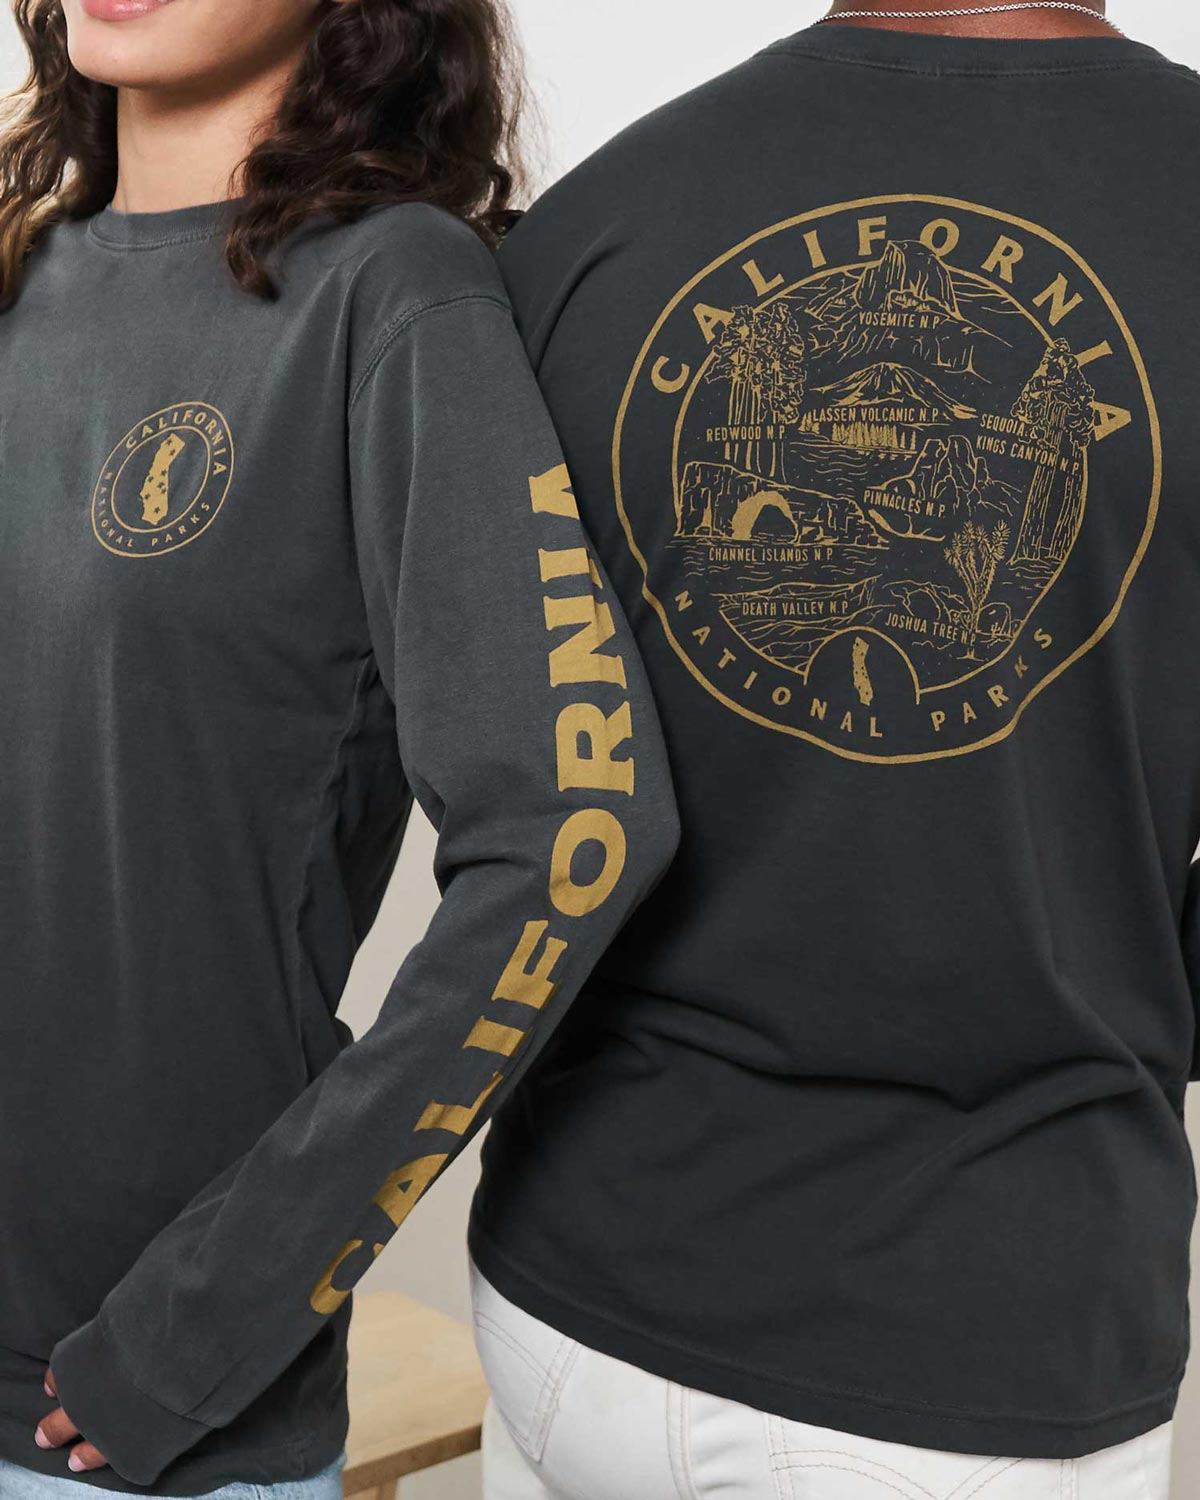 California All Parks Roundup Long Sleeve Tee | Parks Project | National Park Shirts